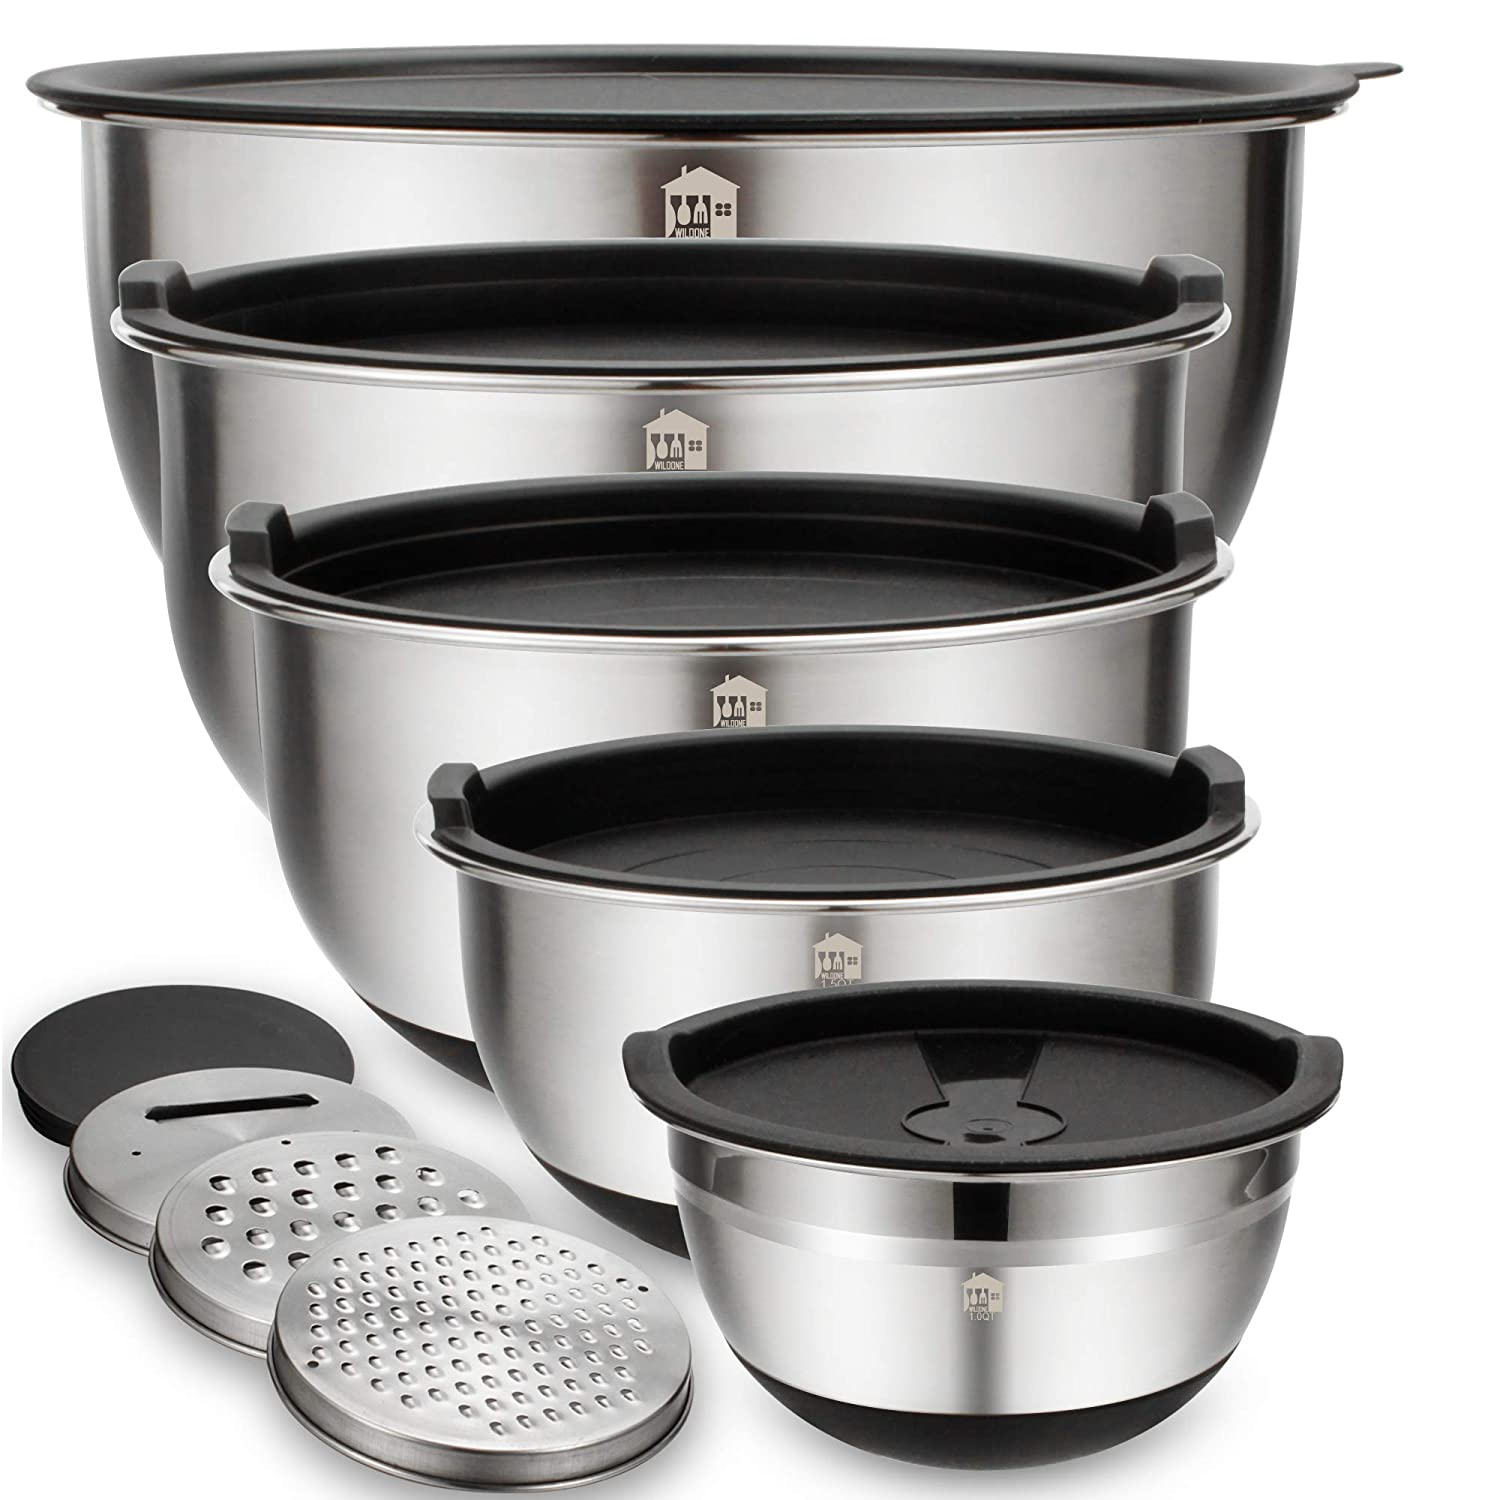 Mixing Bowls Set of 5, Wildone Stainless Steel Nesting Bowls with Airtight Lids, 3 Grater Attachments, Measurement Marks & Non-Slip Bottoms, Size 5, 3, 2, 1.5, 1QT, Great for Mixing & Serving